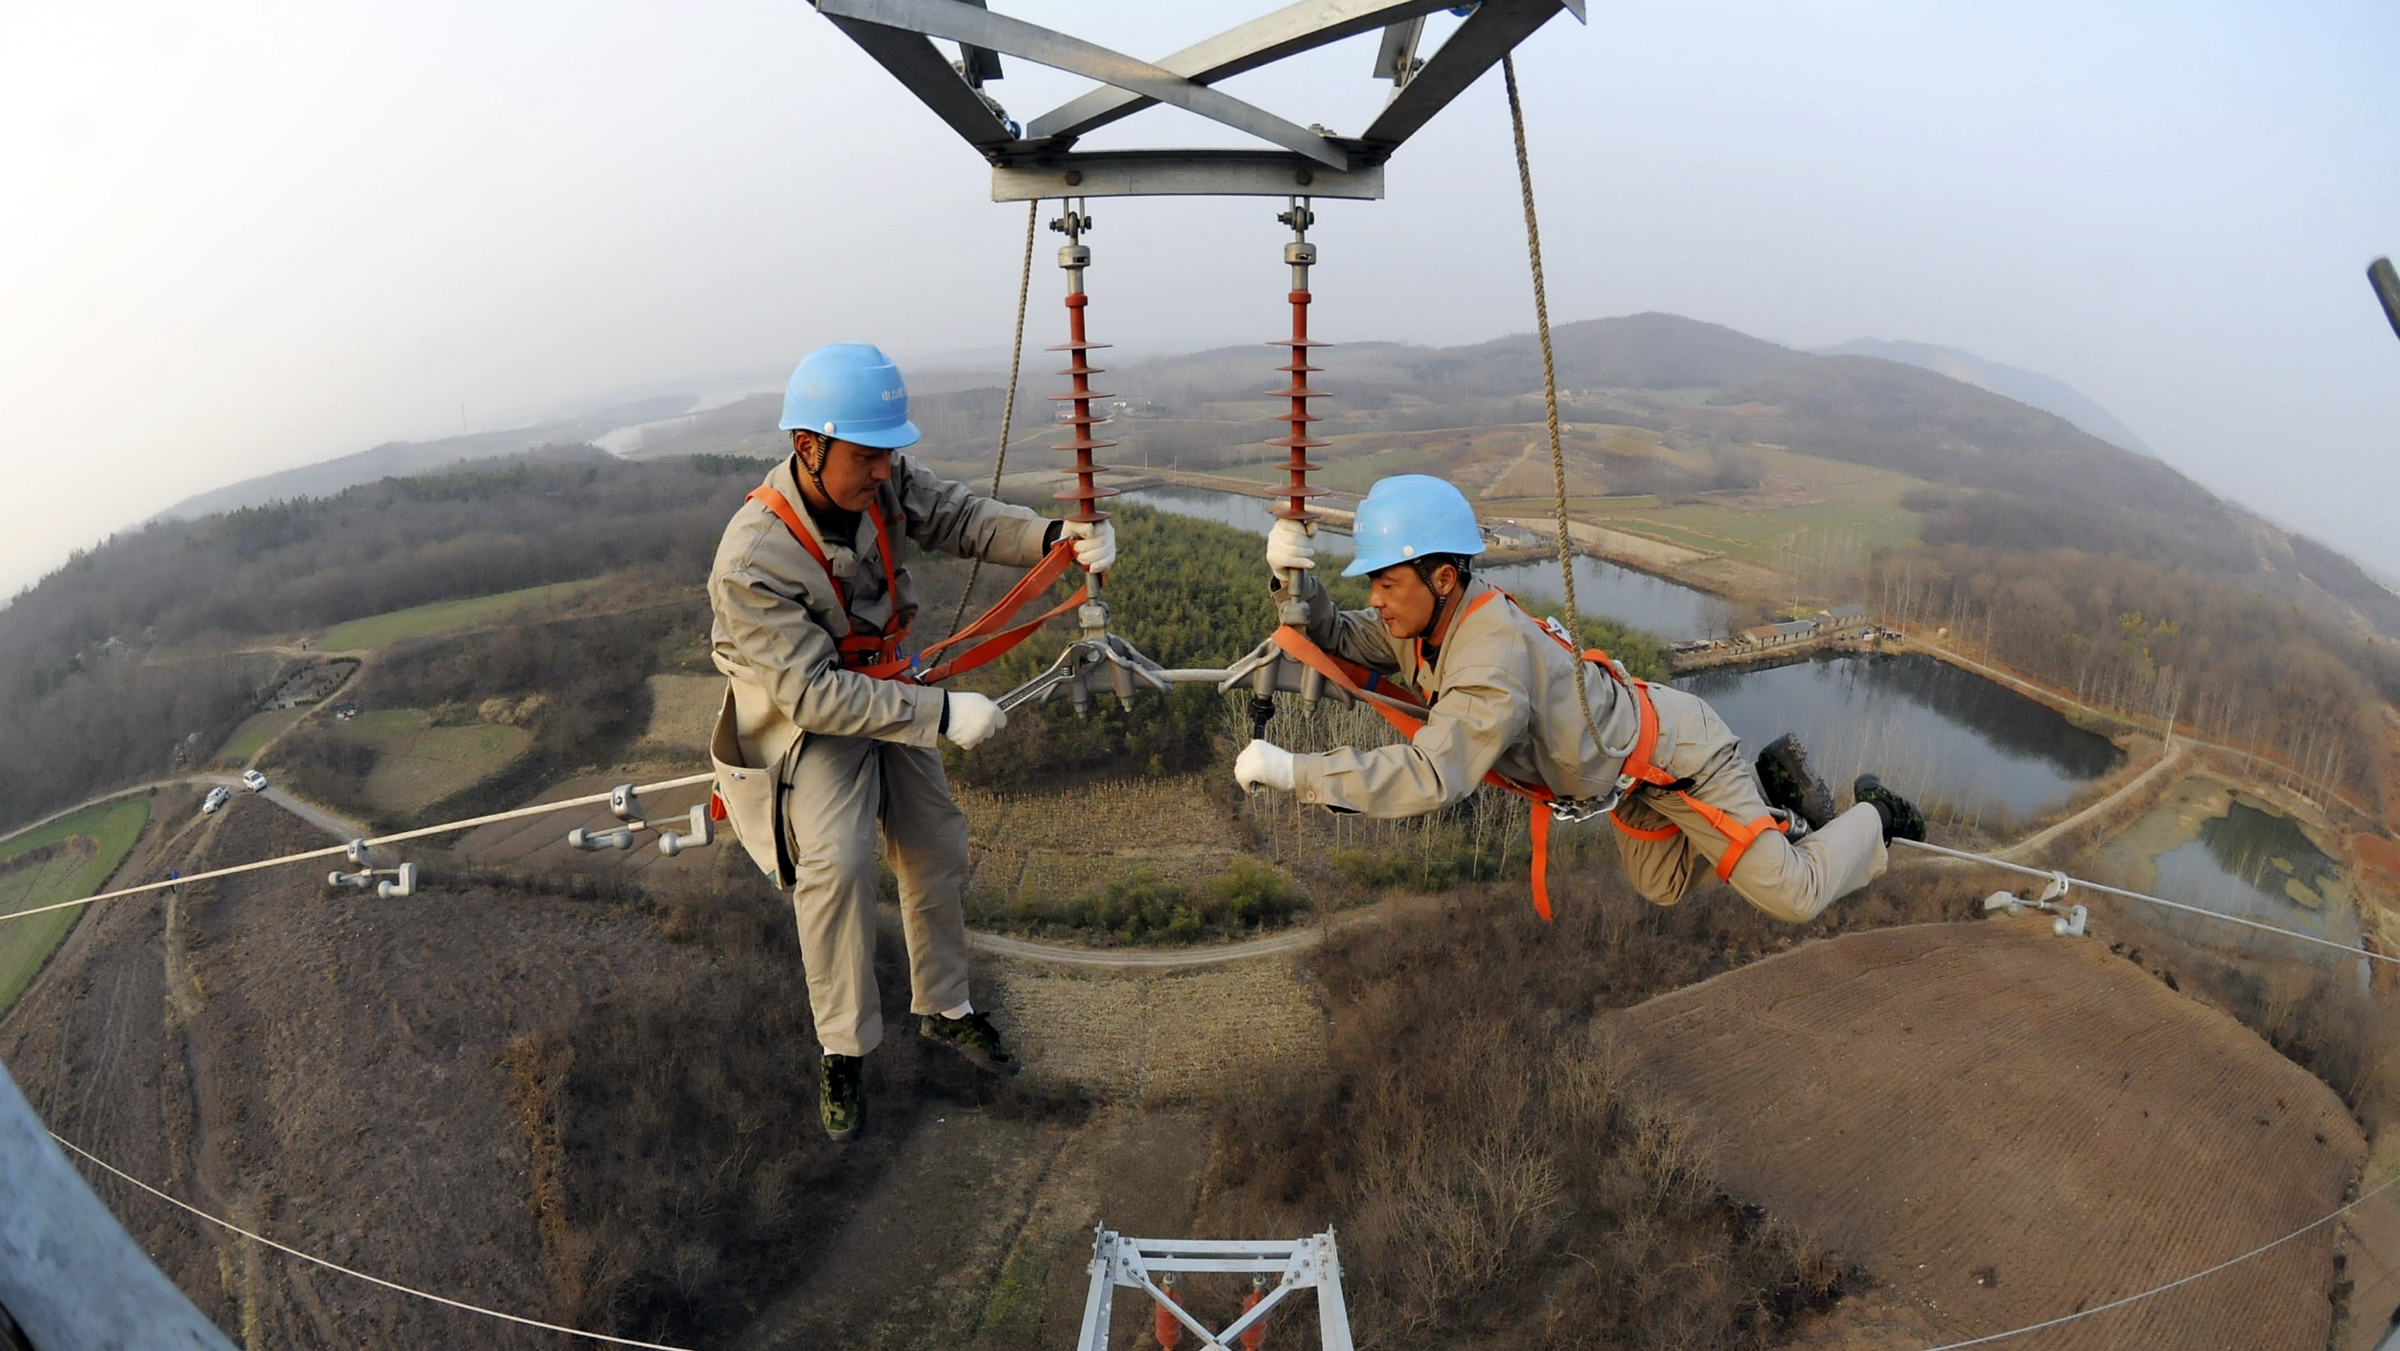 Workers check on electricity pylon situated amid farmlands in Chuzhou, Anhui province, February 5, 2013. A leading think tank of China predicted that China's GDP will grow in 2013 at a rate of 8.4 percent, up by 0.6 percentage points from that of 2012, Xinhua News Agency reported. REUTERS/China Daily